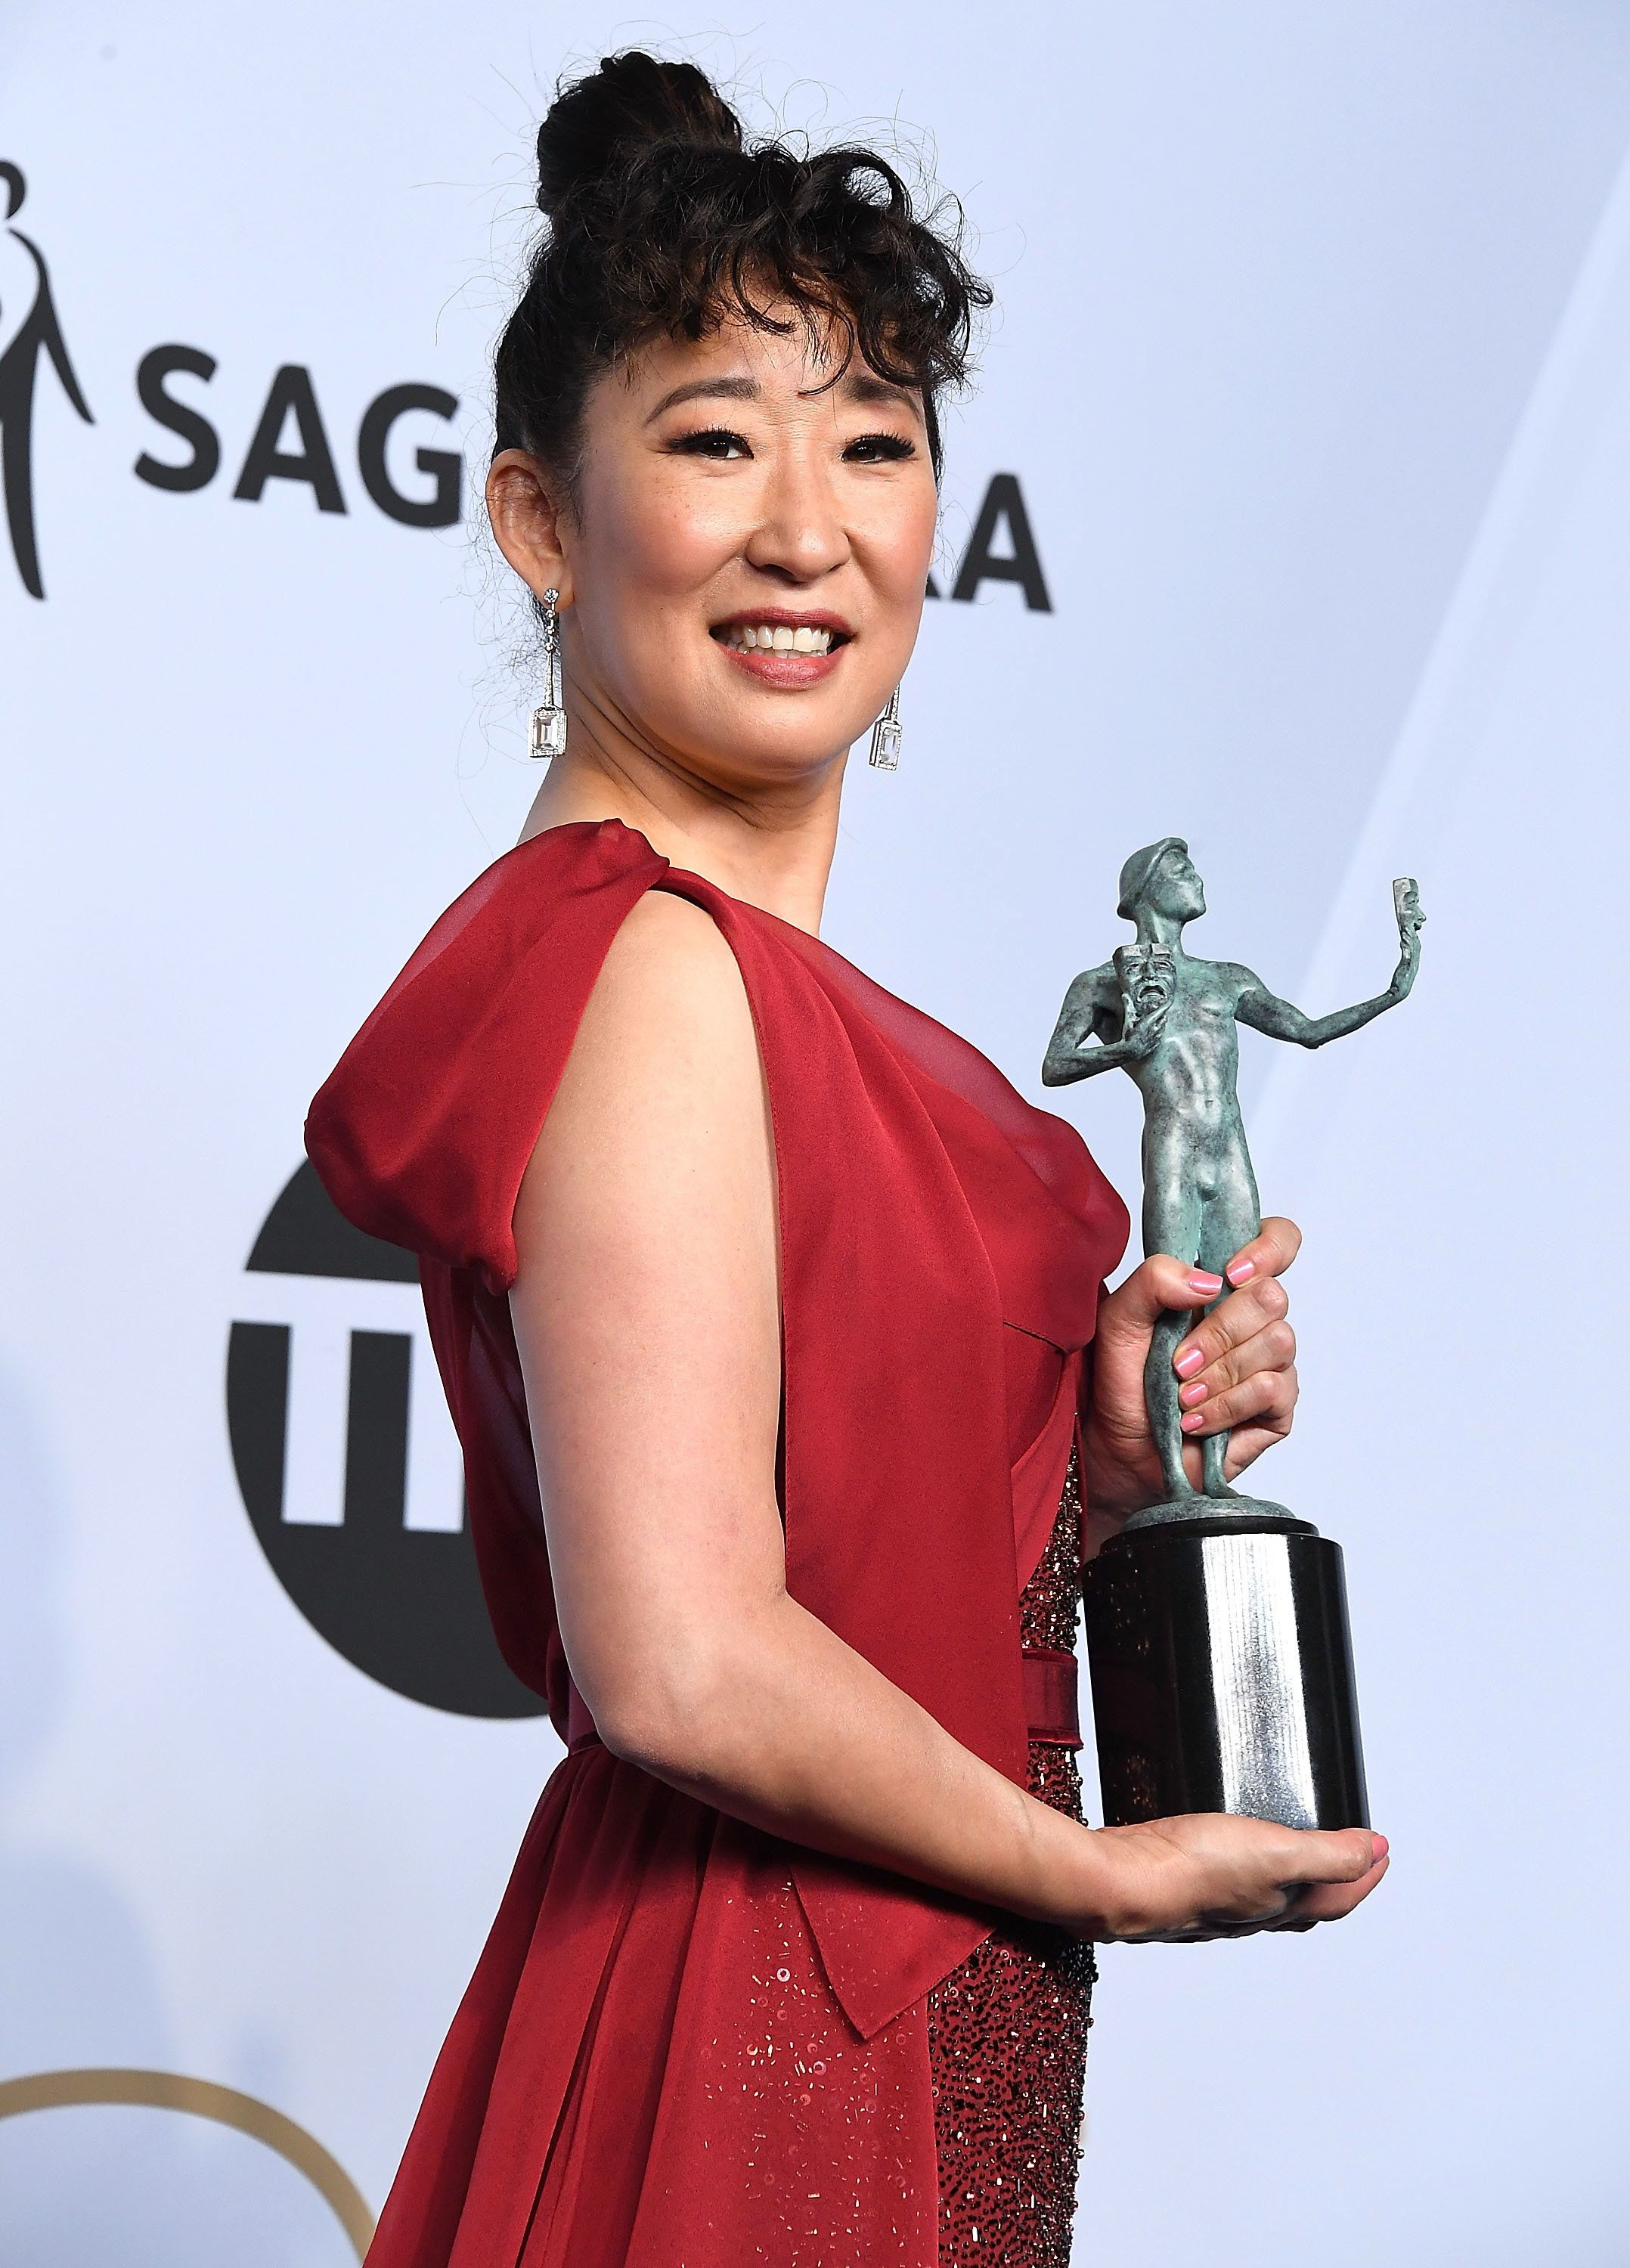 LOS ANGELES, CA - JANUARY 27:  Sandra Oh arrives at the 25th Annual Screen Actors Guild Awards at The Shrine Auditorium on January 27, 2019 in Los Angeles, California.  (Photo by Steve Granitz/WireImage)